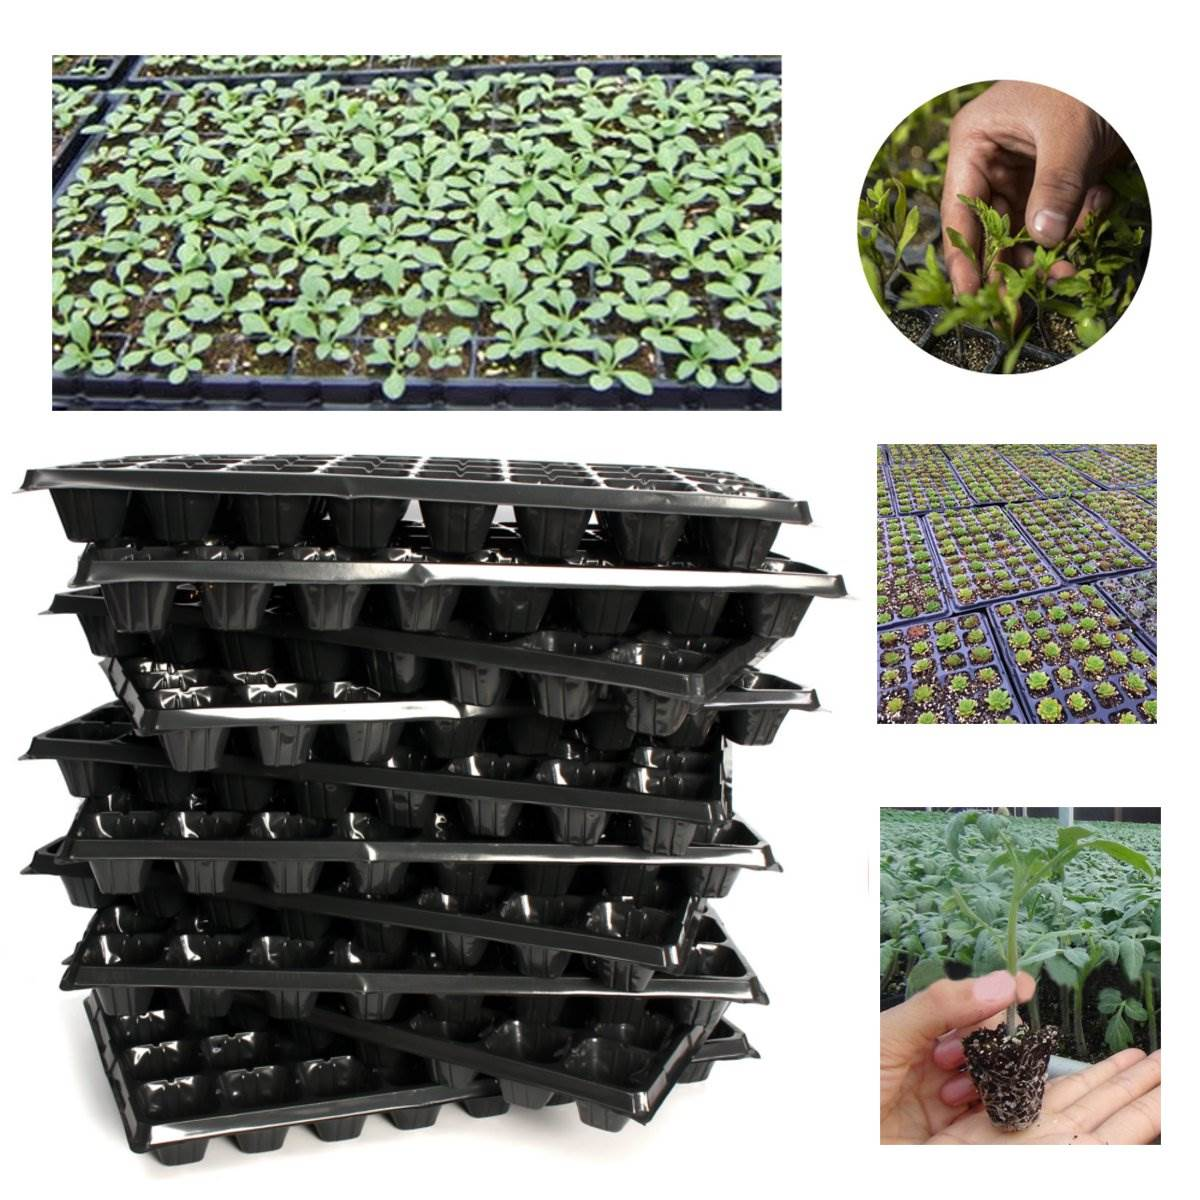 32 Cell Seedling Starter Trays Seed Germination Garden Plant Propagation Le Gardening Supplies Hydroponic Seed Starting Cloning Supplies